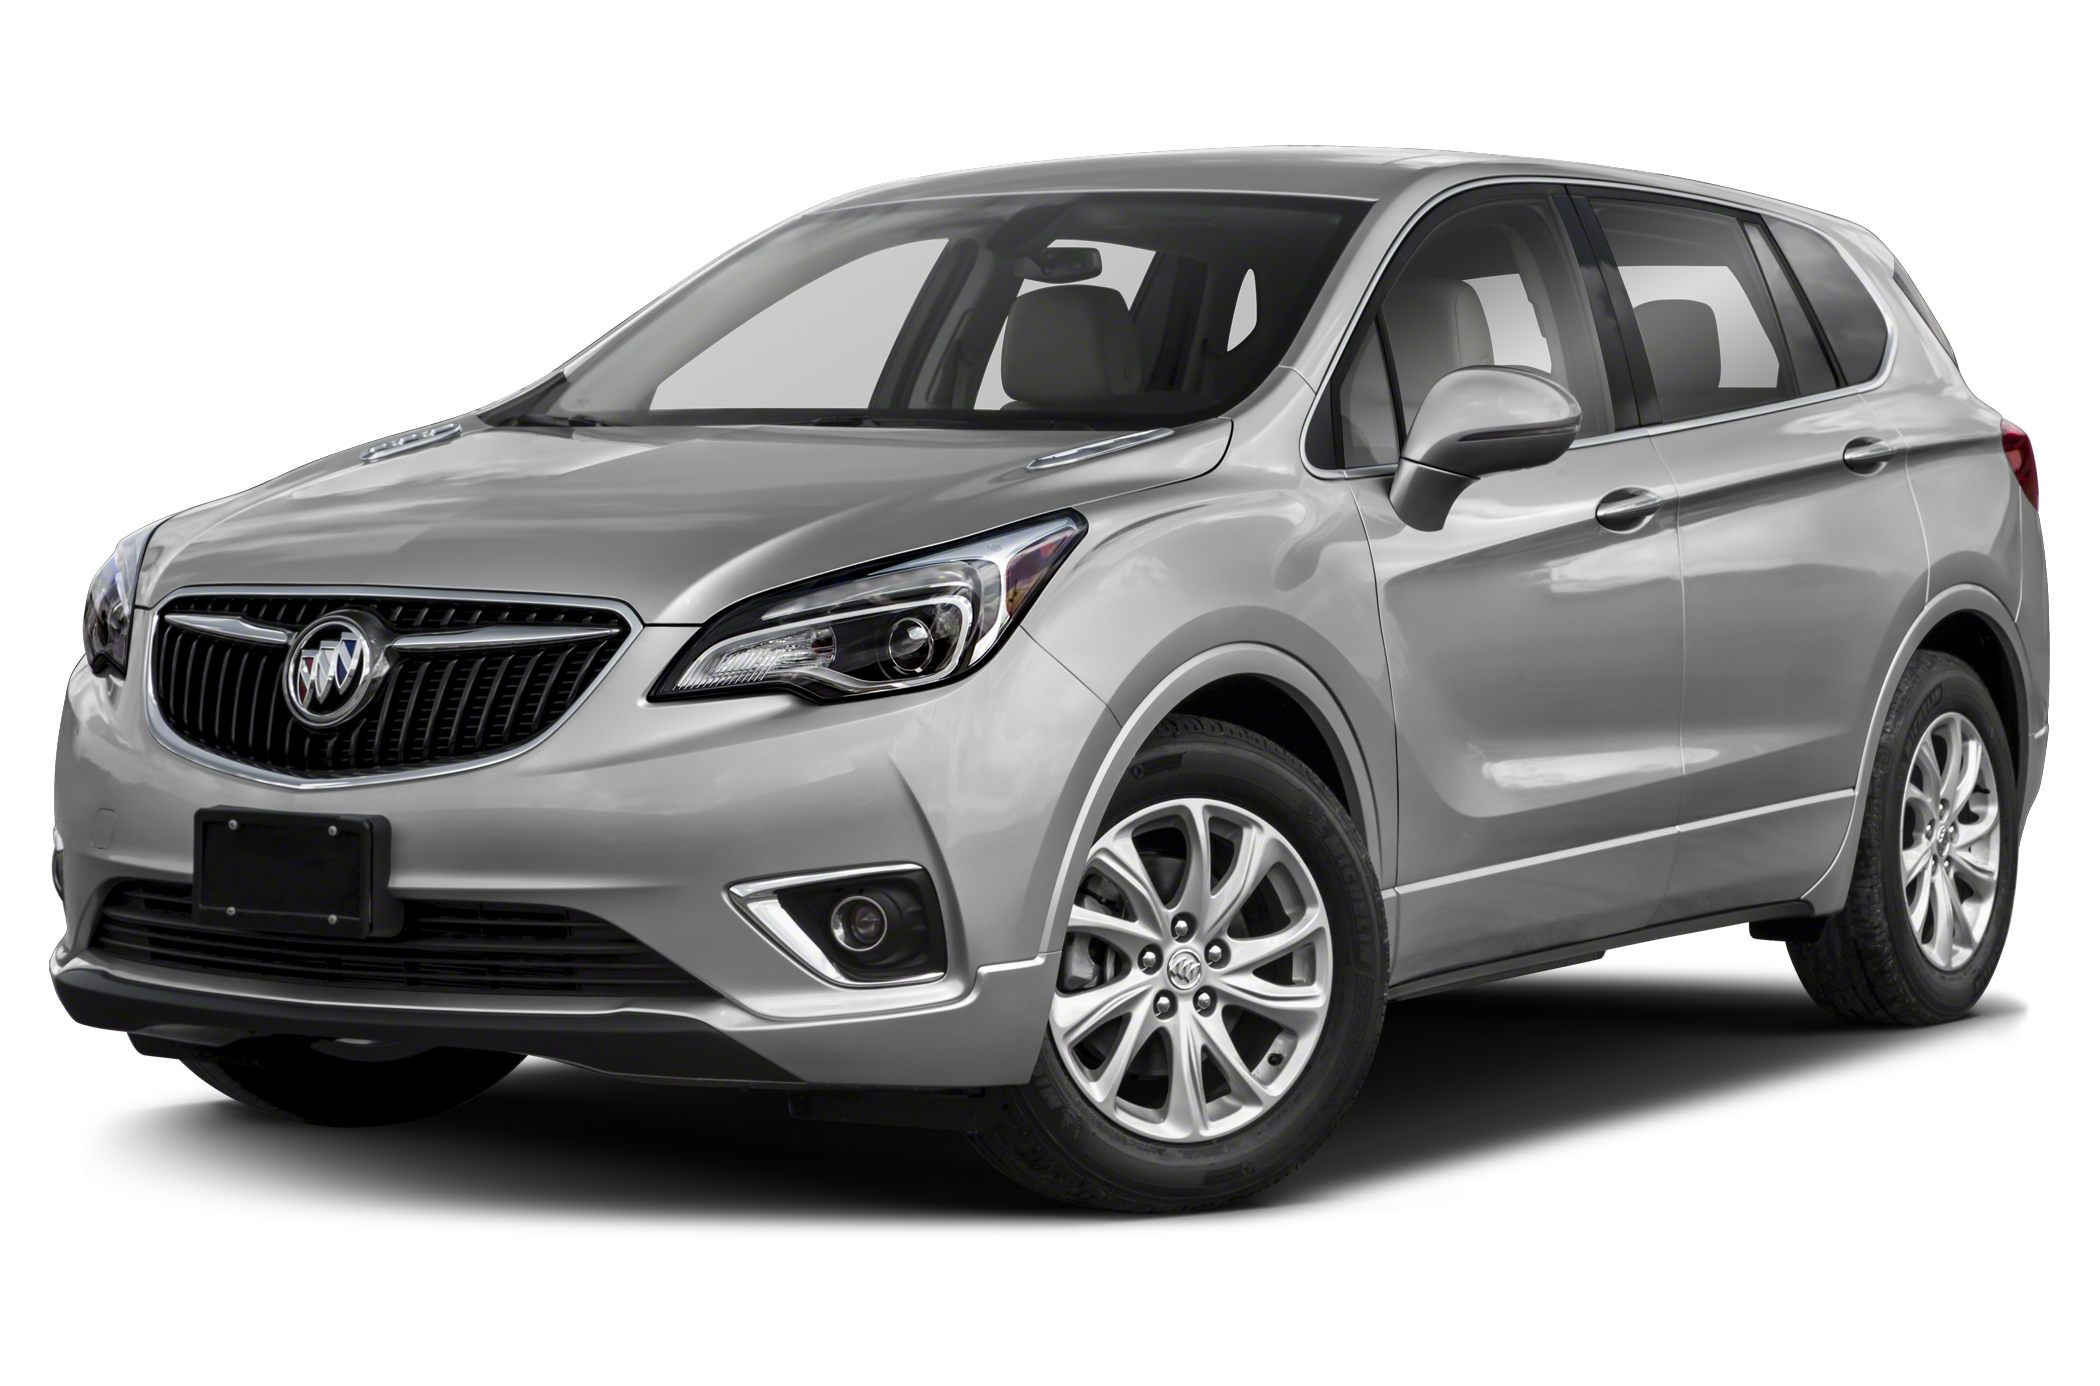 Buick Envision Interior Just As Nice As Its Exterior | Autoblog New 2022 Buick Envision Reliability, Seat Covers, Safety Rating